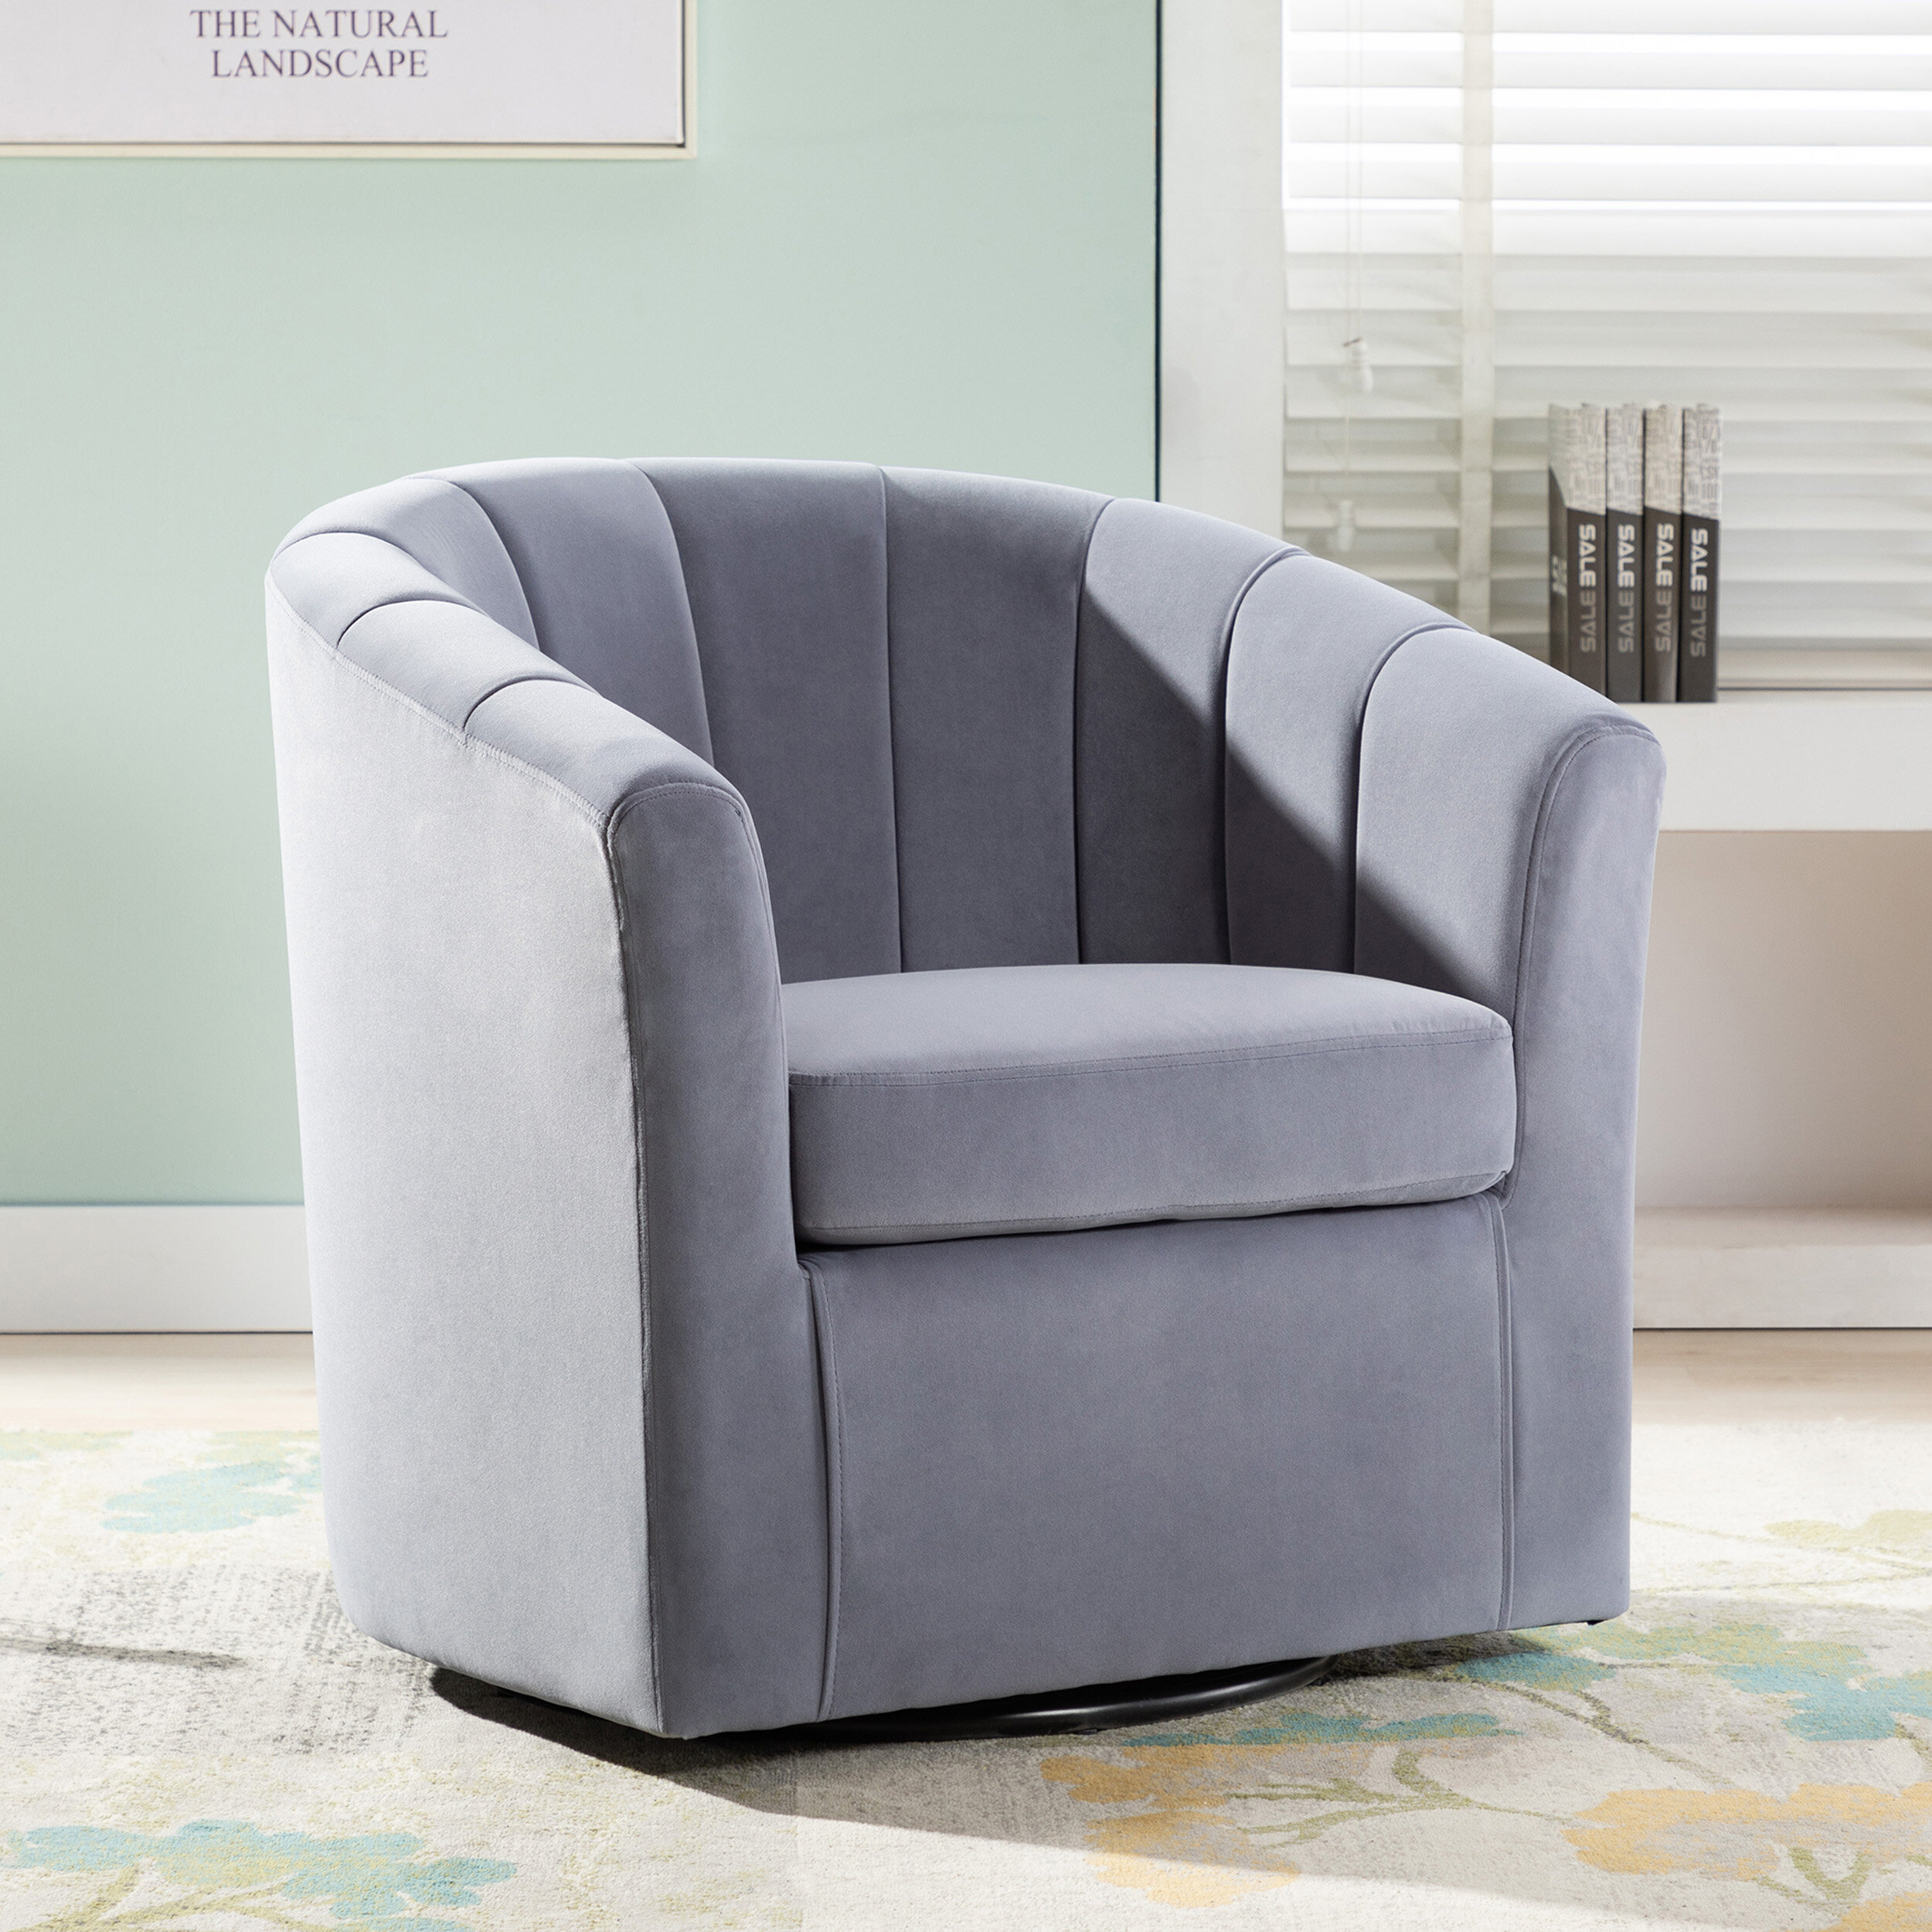 Barrentine Swivel Barrel Chair Inside Claudel Polyester Blend Barrel Chairs (View 3 of 15)